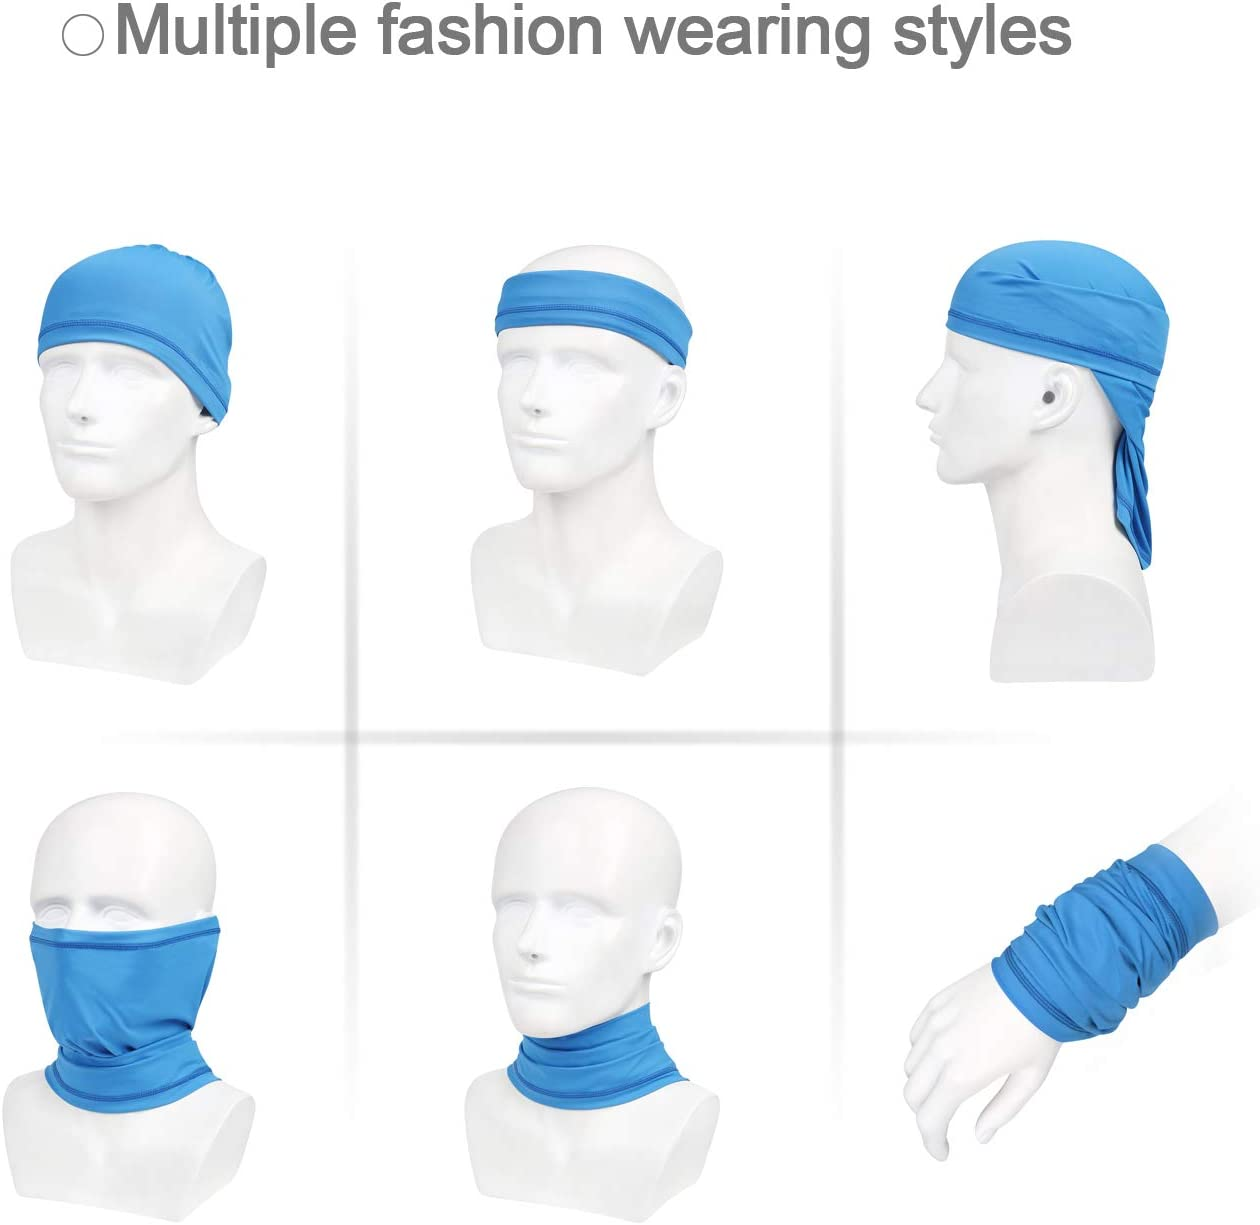 Sfee Balaclava Face Mask Winter Neck Warmer Windifable Breakfast Face Cover Hat for Men Women Outdoor Unisex Headband Ear Warmers Mufts